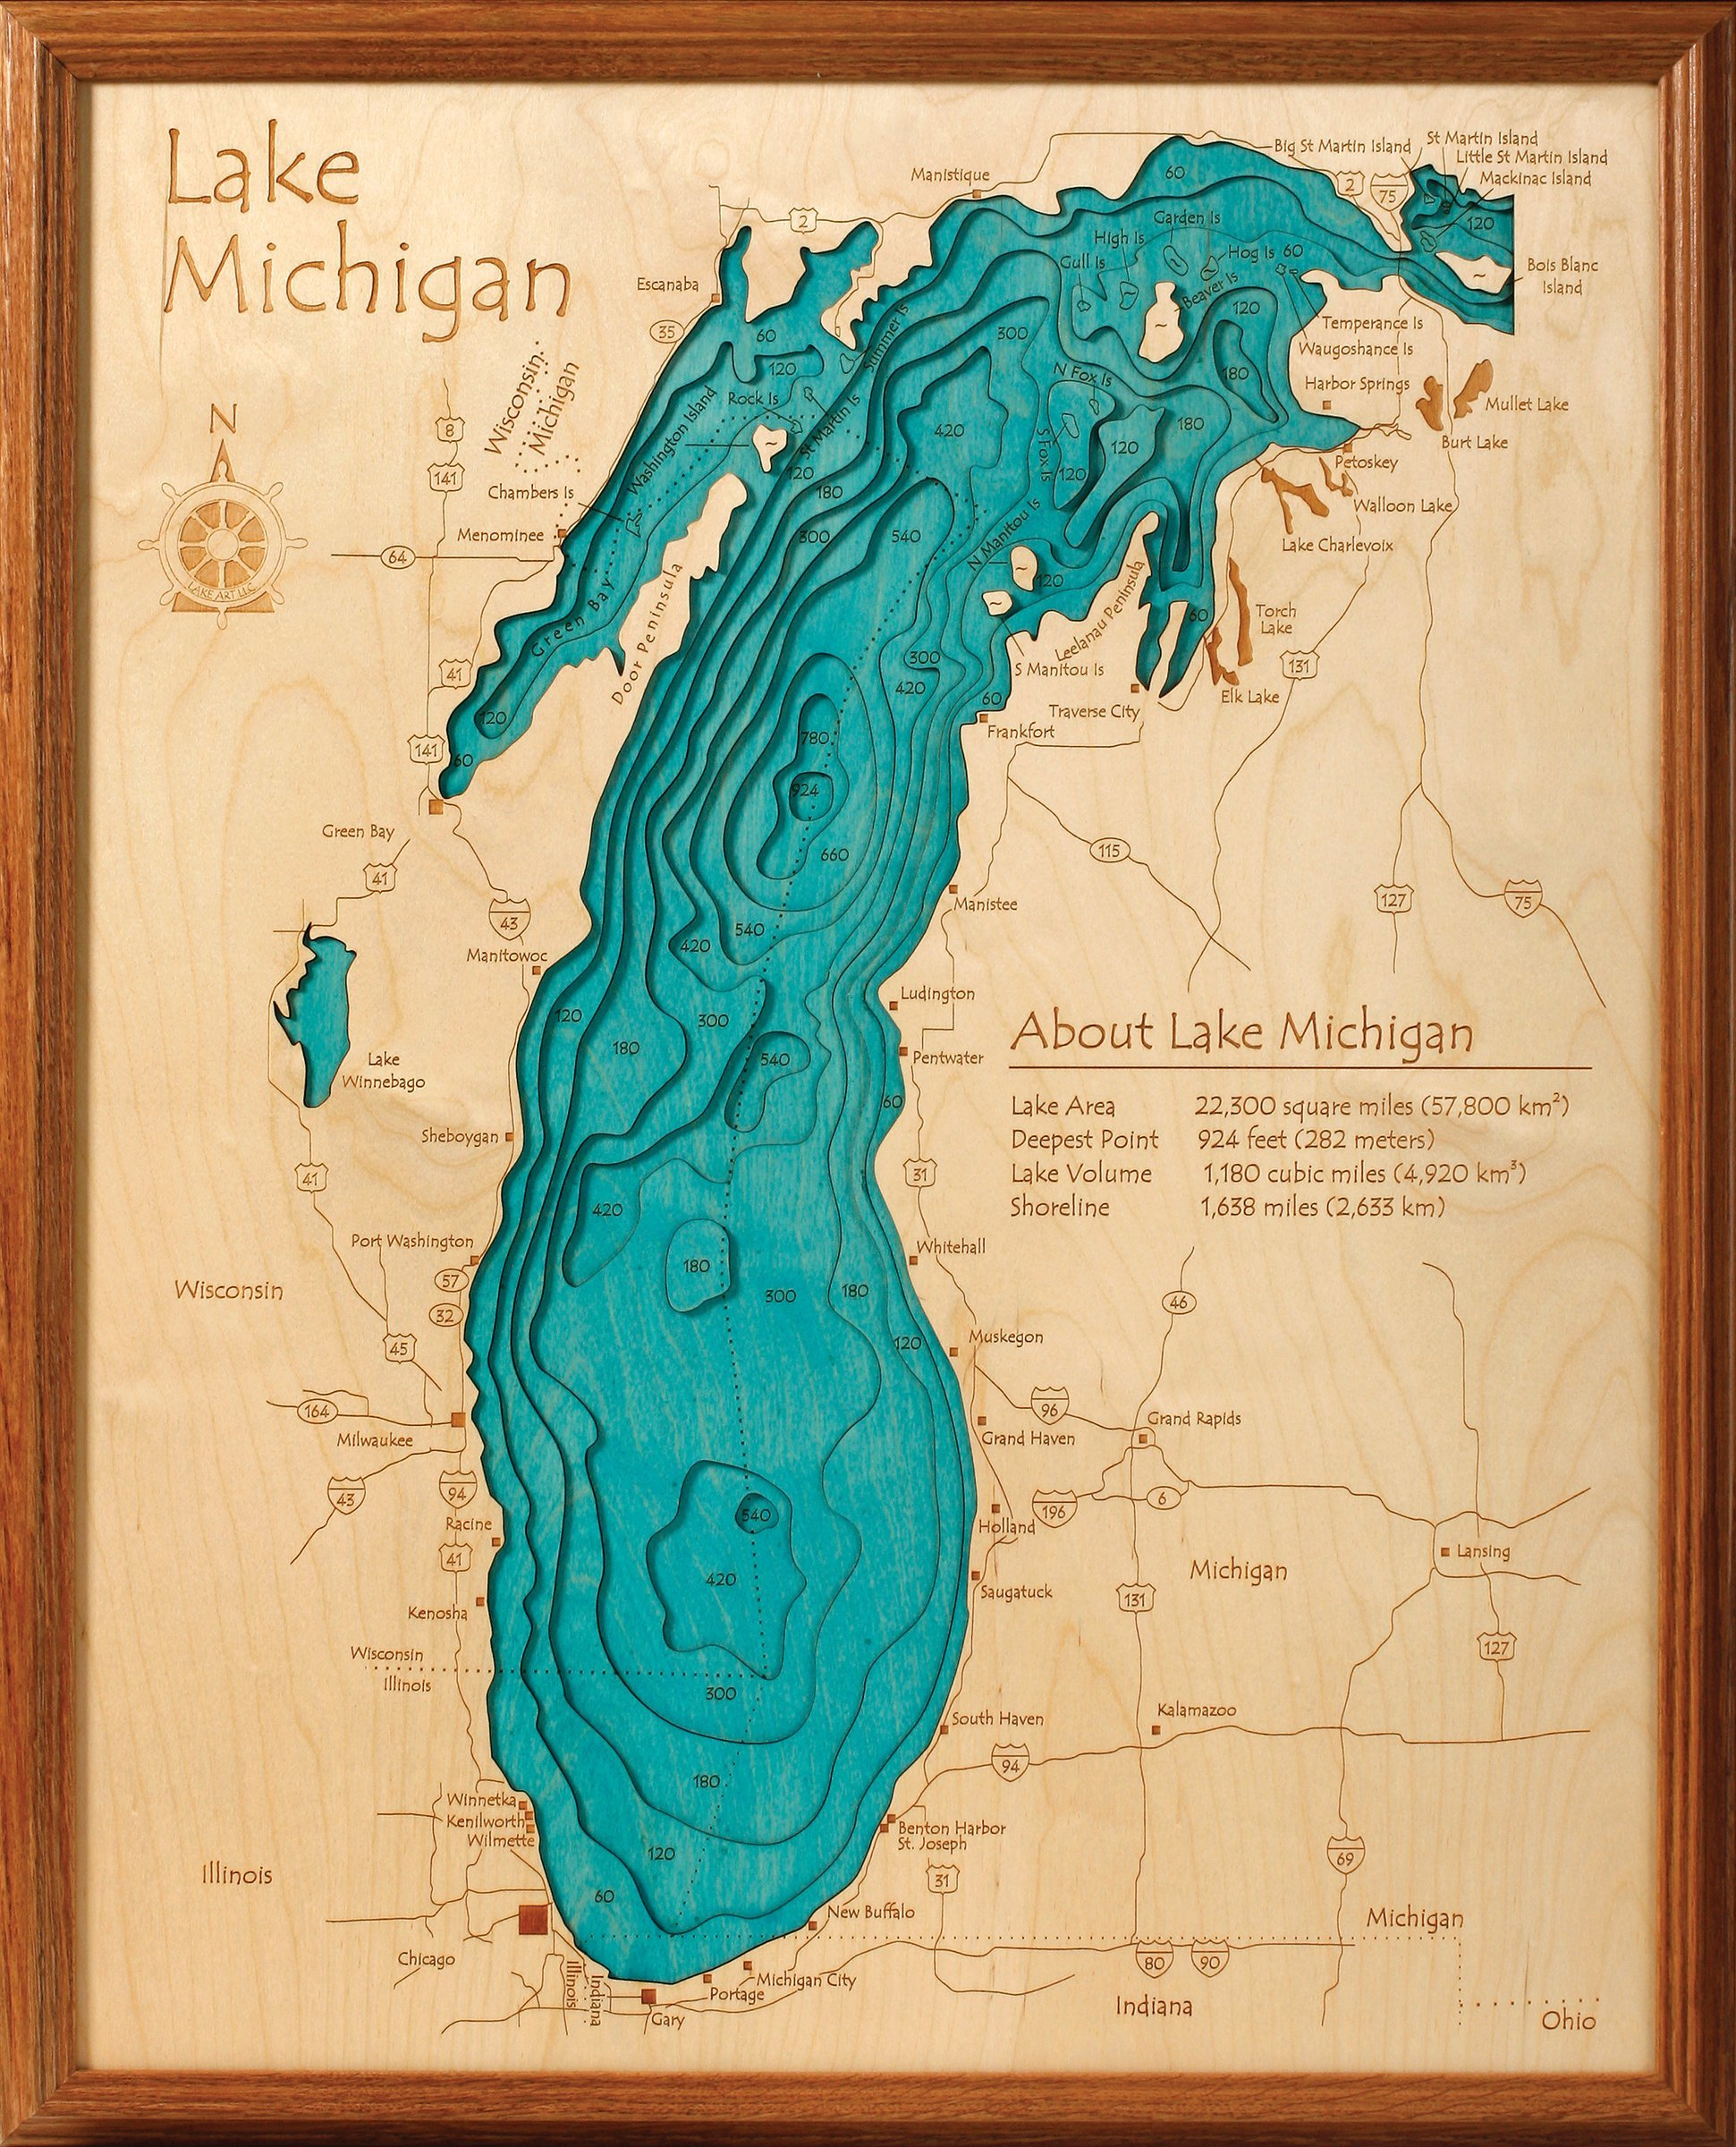 St Clair River (East China Region) in St Clair, MI - 3D Map 16 x 20 IN - Laser carved wood nautical chart and topographic depth map. by Long Lake Lifestyle